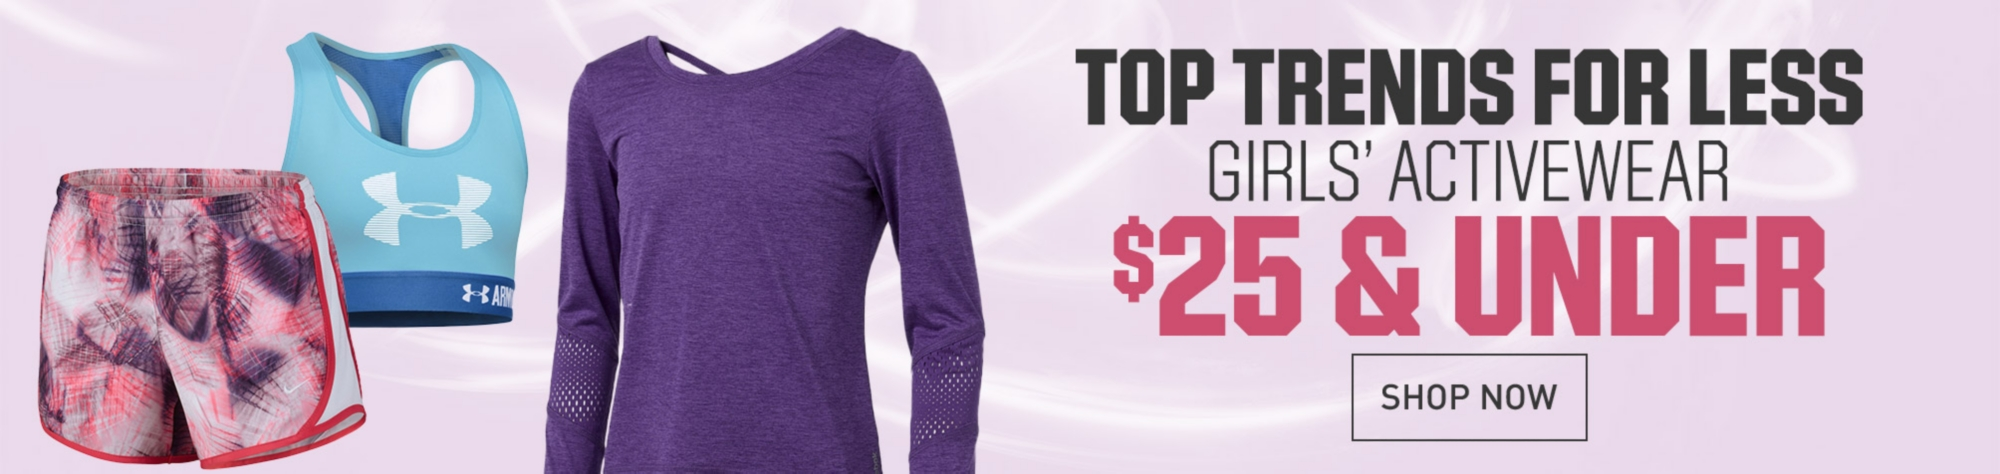 Girls' Activewear Apparel $25 & Under